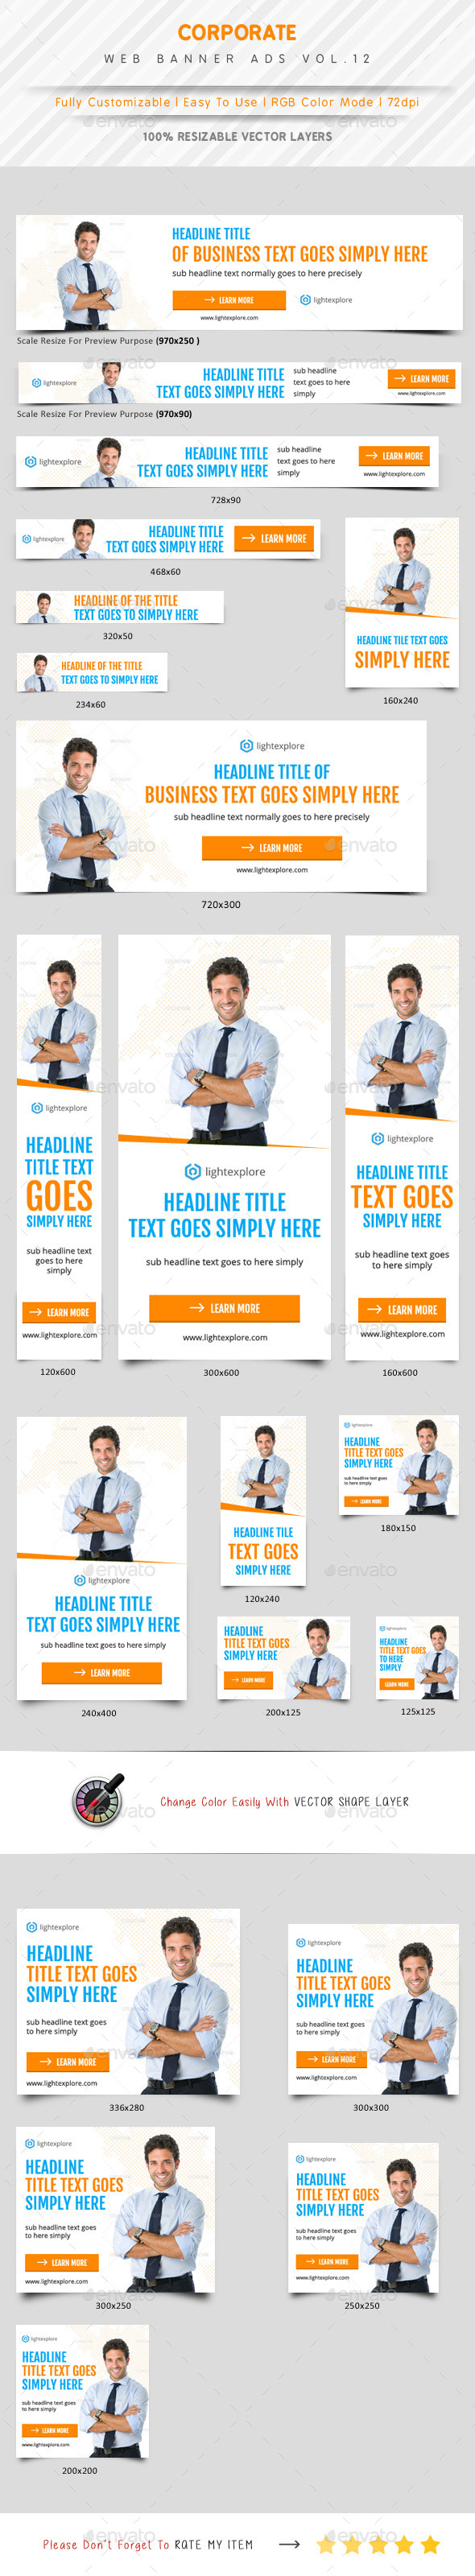 Corporate Web Banner Ads Vol.12 - Banners & Ads Web Elements